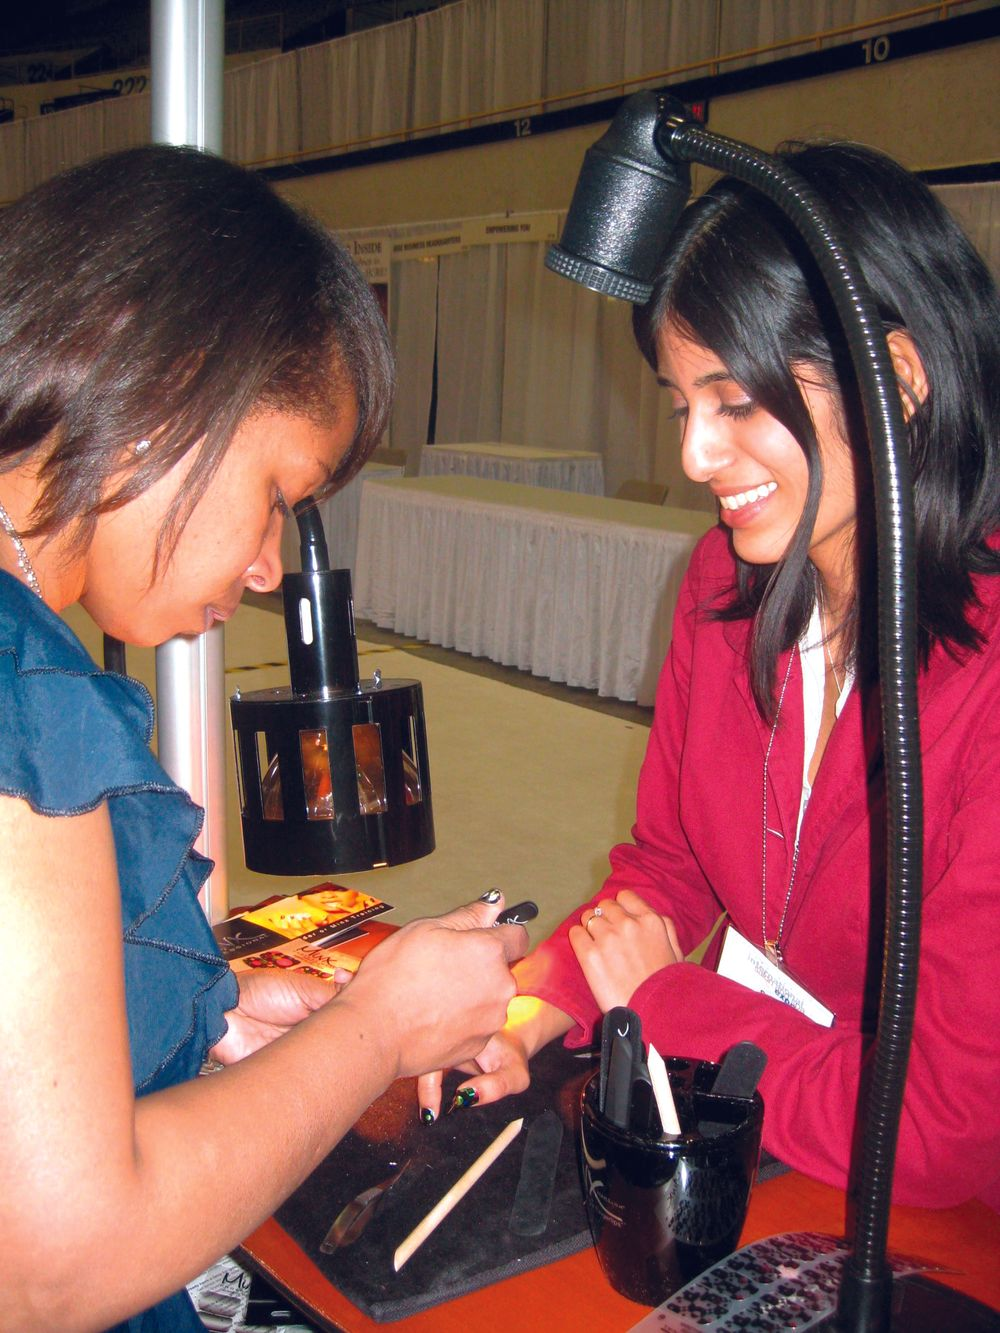 <p>Celebrity nail tech Lisa Logan (left) designed her own line of Minx nail coatings and applied her whimsical Happy Dots pattern to managing editor Sree Roy&rsquo;s fingernails.</p>